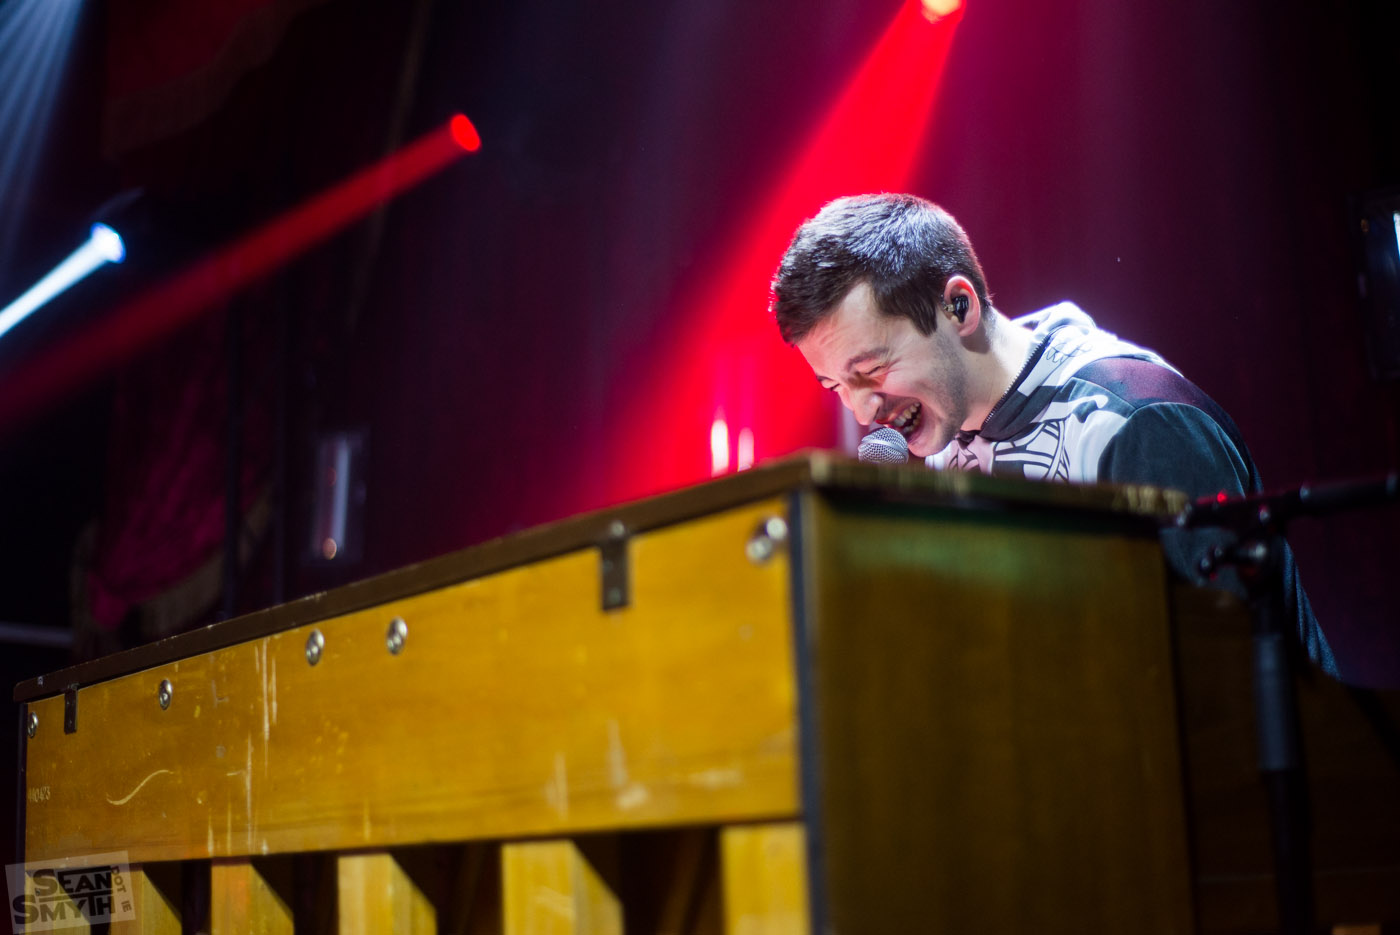 twenty-one-pilots-at-the-academy-by-sean-smyth-16-11-14-31-of-41_15621970430_o